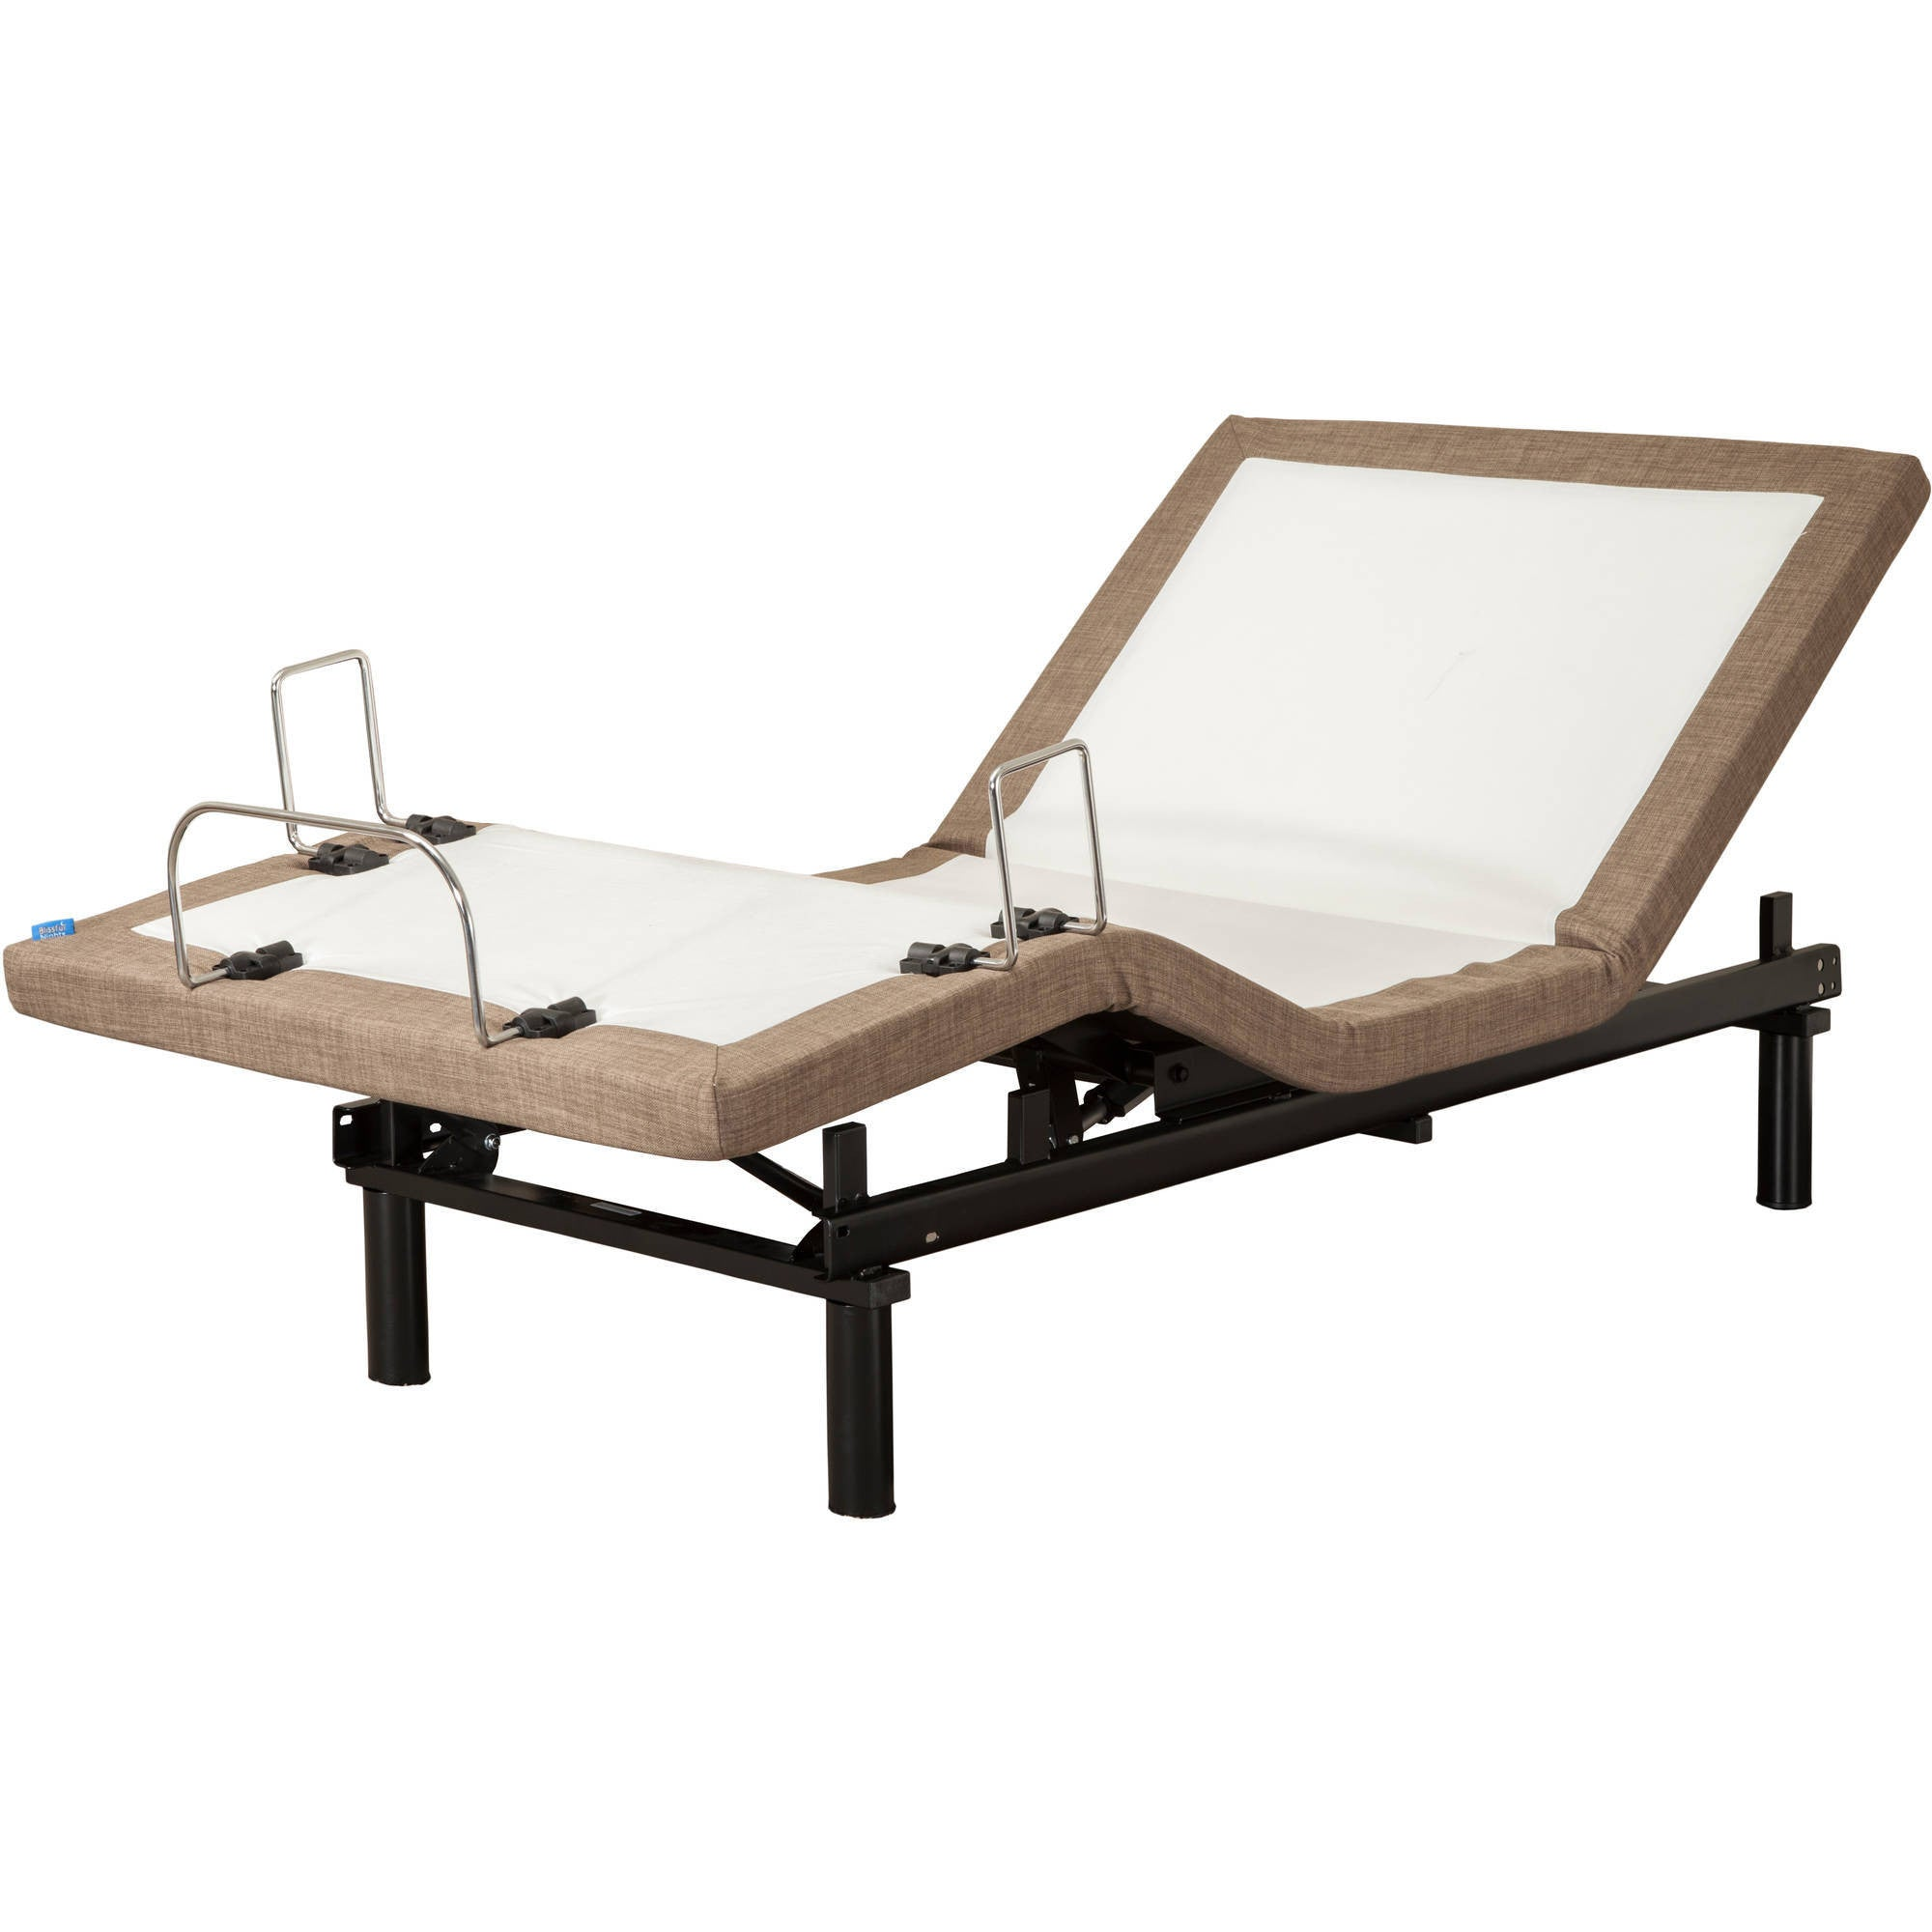 base bed and leggett this platt adjustable motion frames pro discount beds